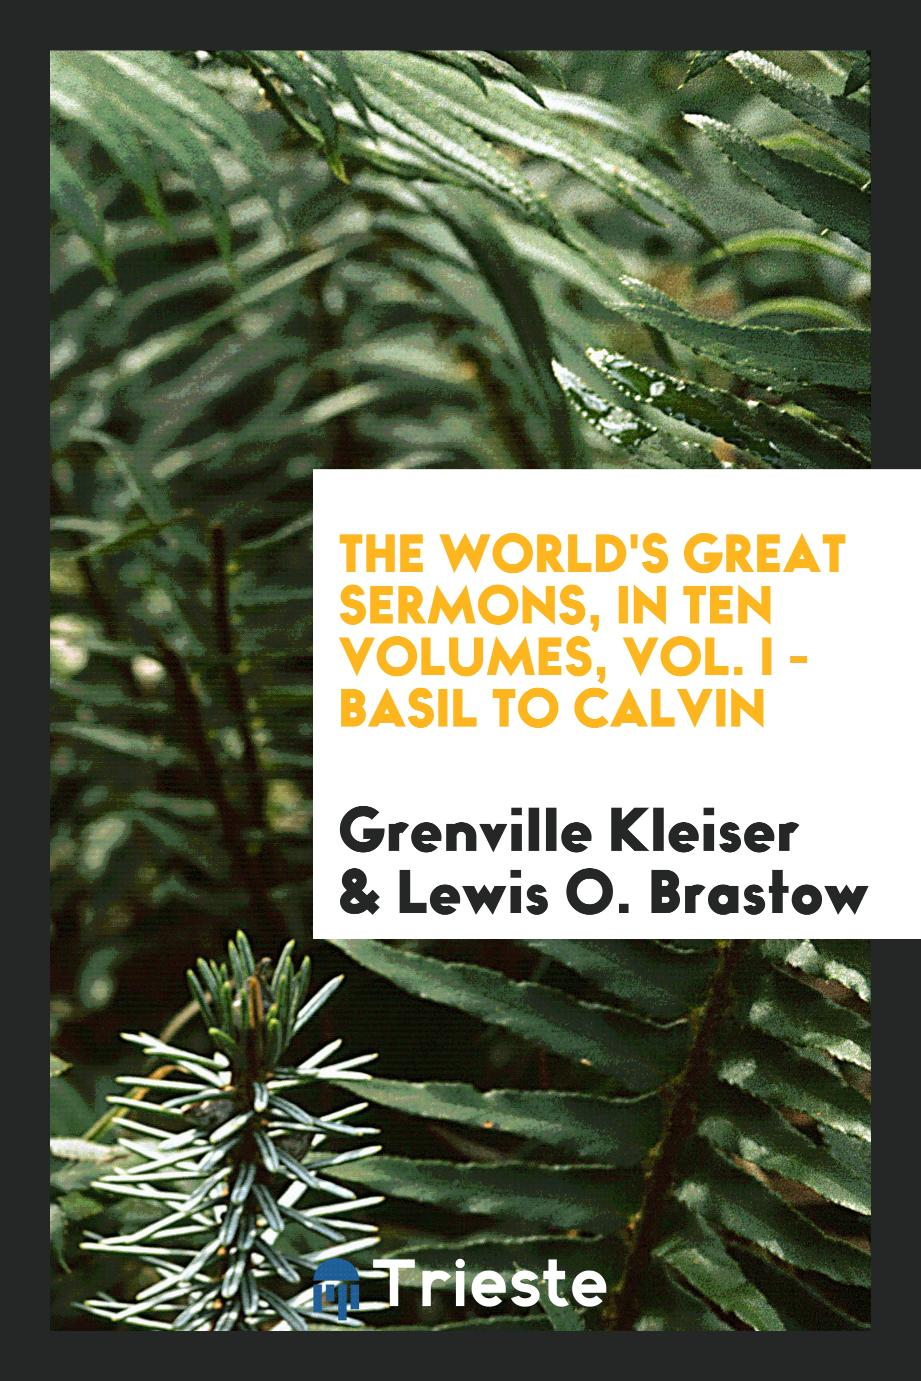 The World's Great Sermons, in Ten Volumes, Vol. I - Basil to Calvin